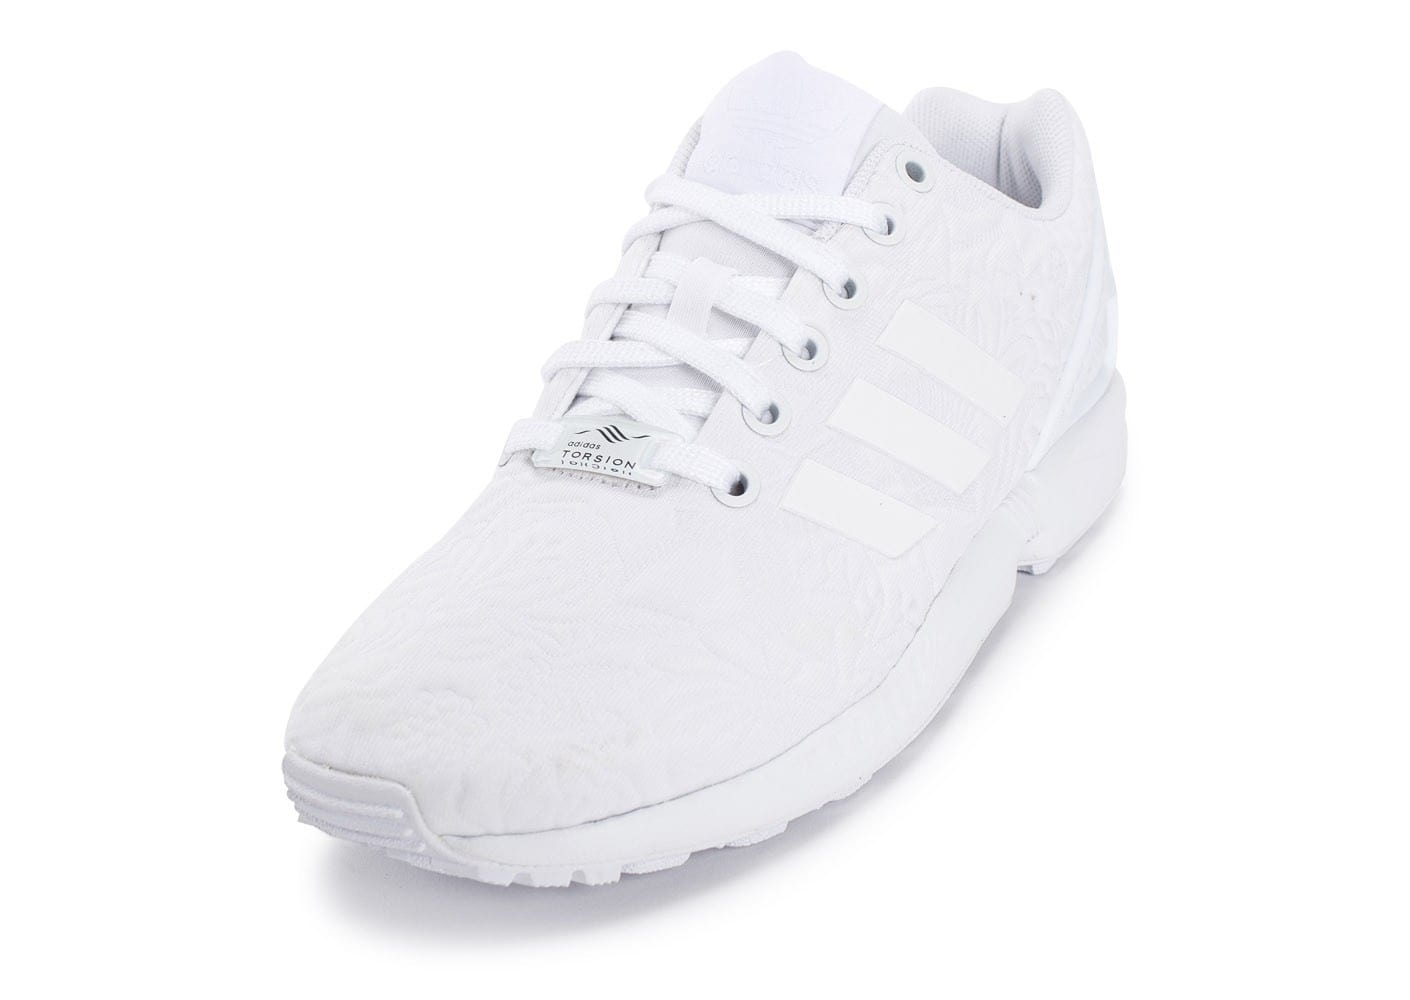 adidas Zx Flux 3D Tropical Blanche Chaussures adidas